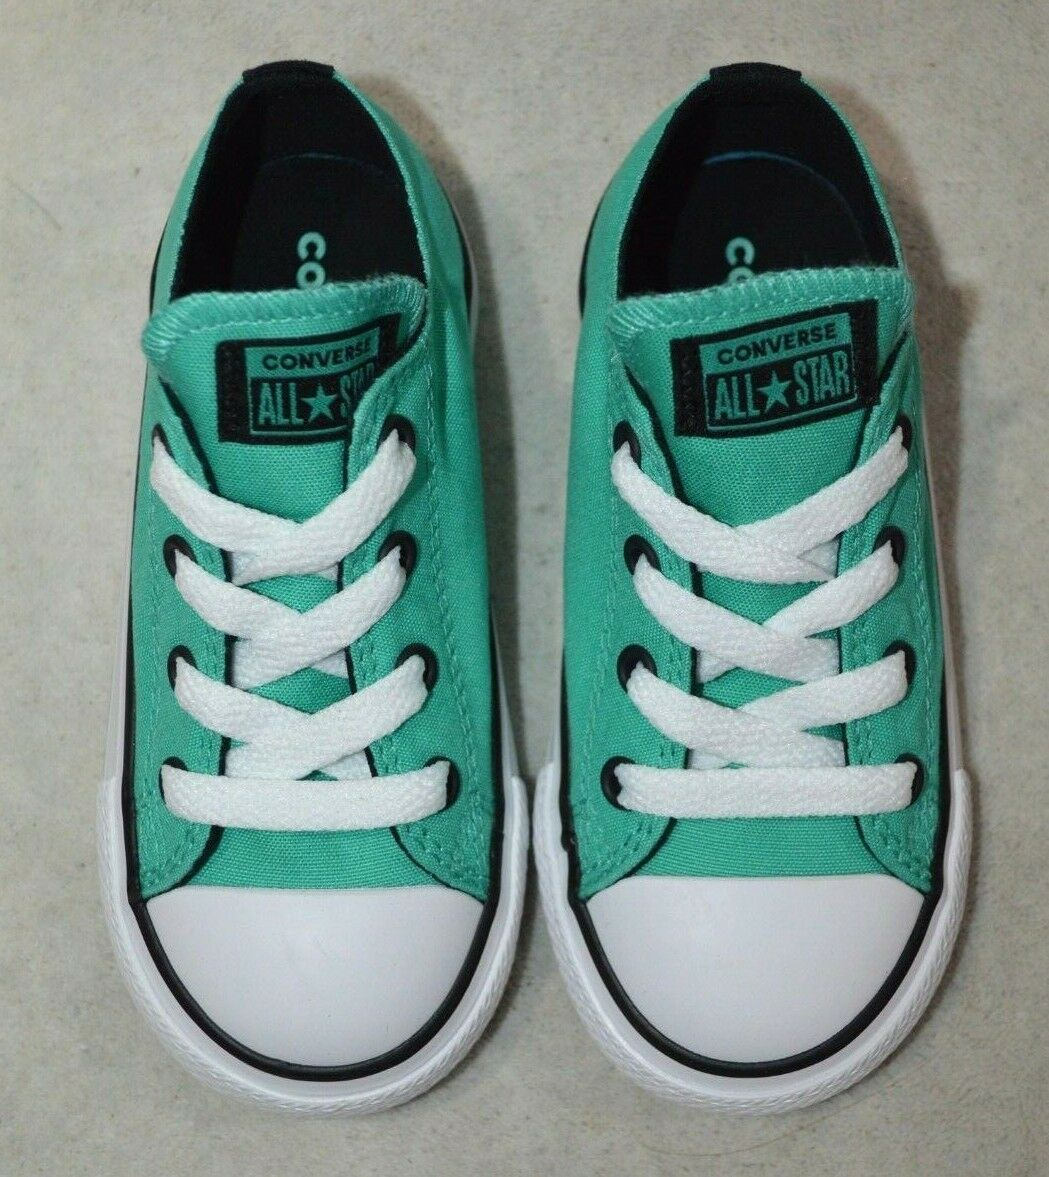 Converse® All Star CT OX P-Teal/Black/White Toddler Girl's Shoes- 6/7/8/9/10 NWB 1